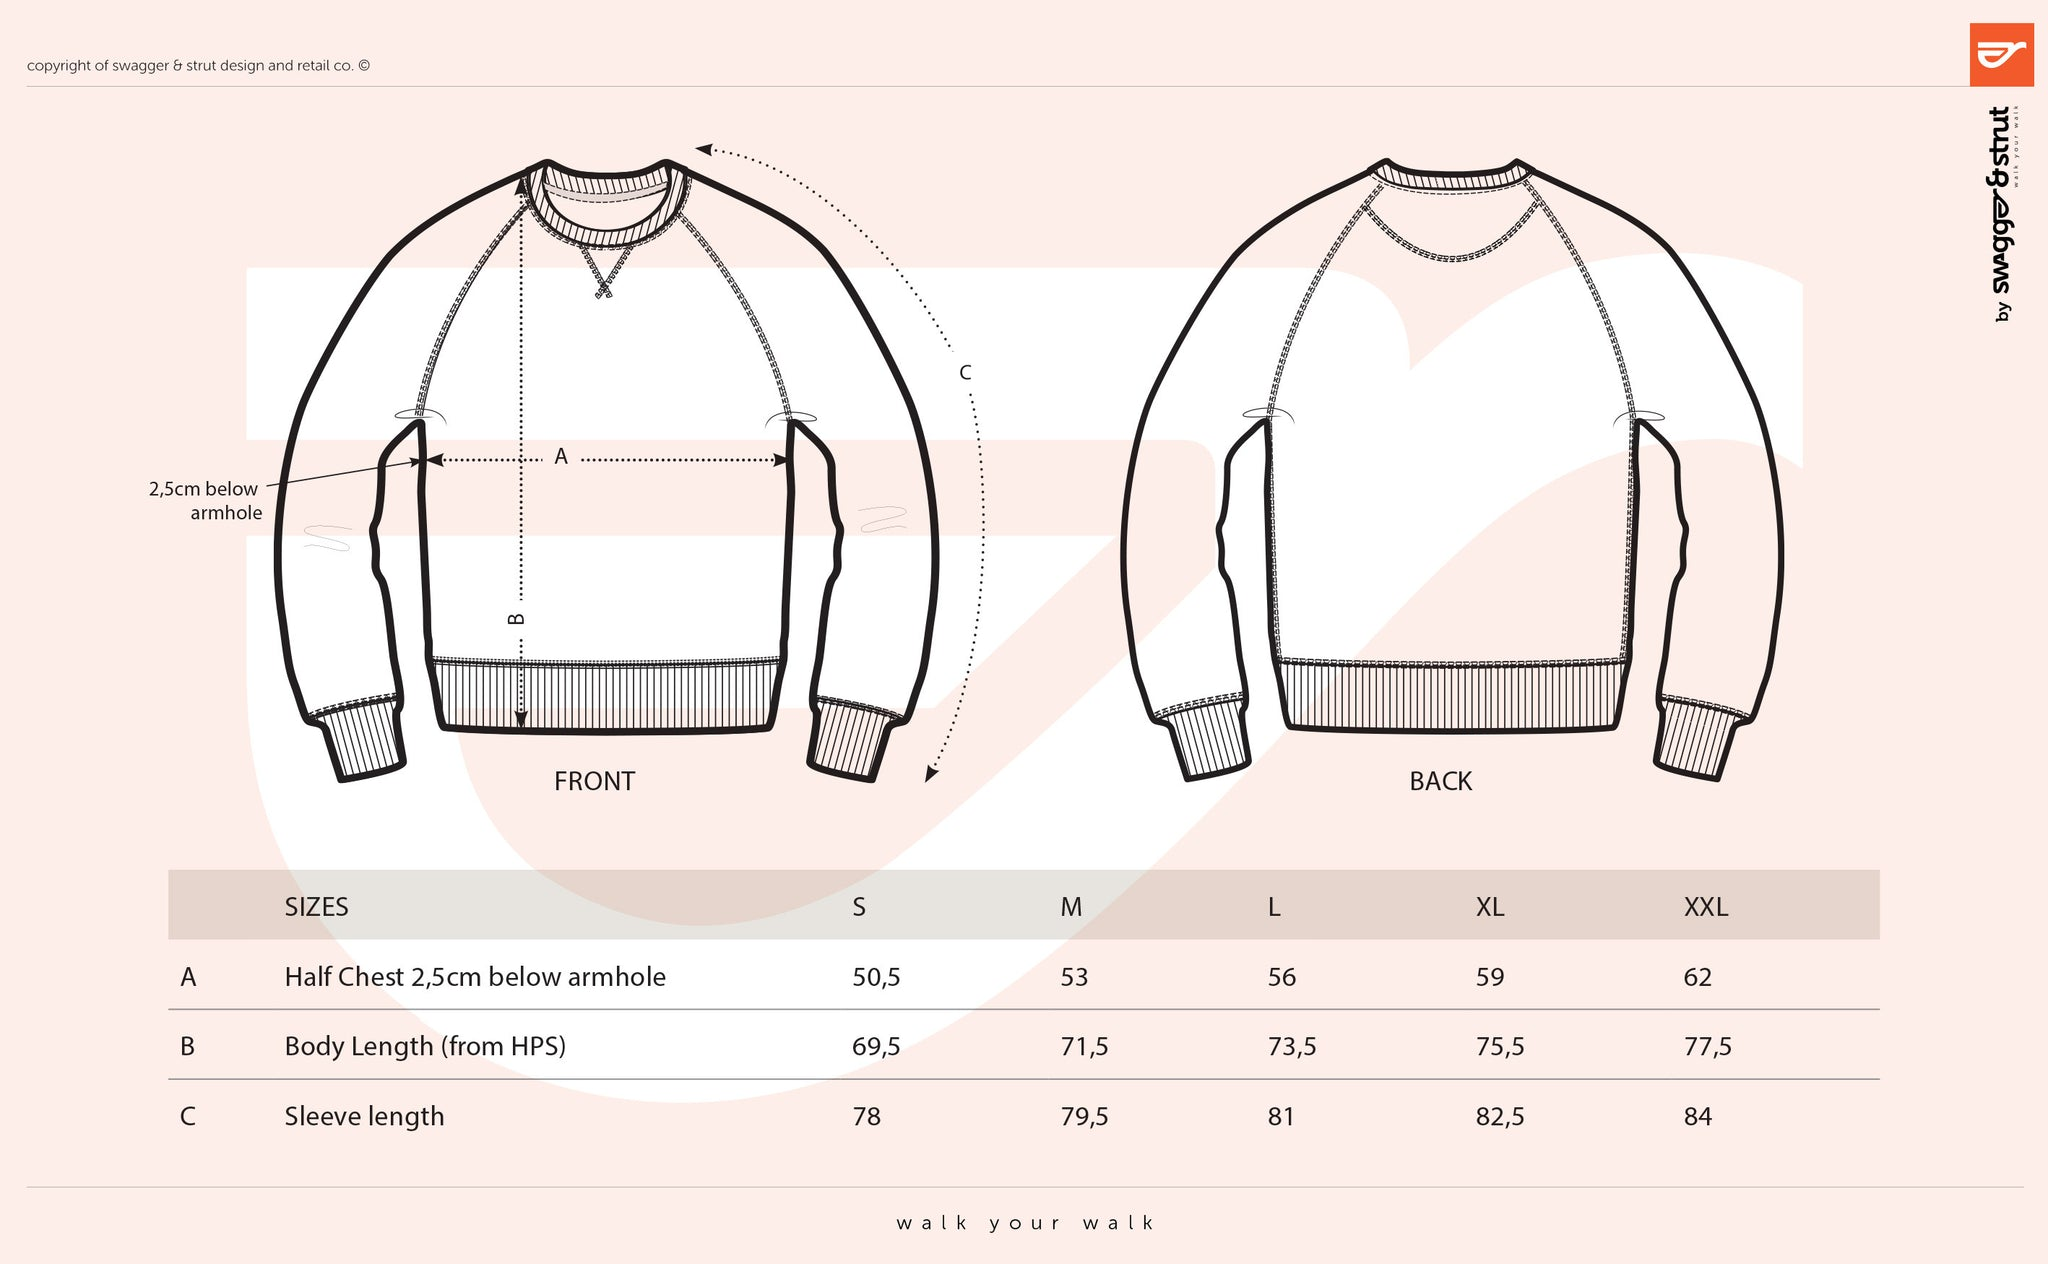 ss-male-sweatshirt-strols-denim-size-chart-template